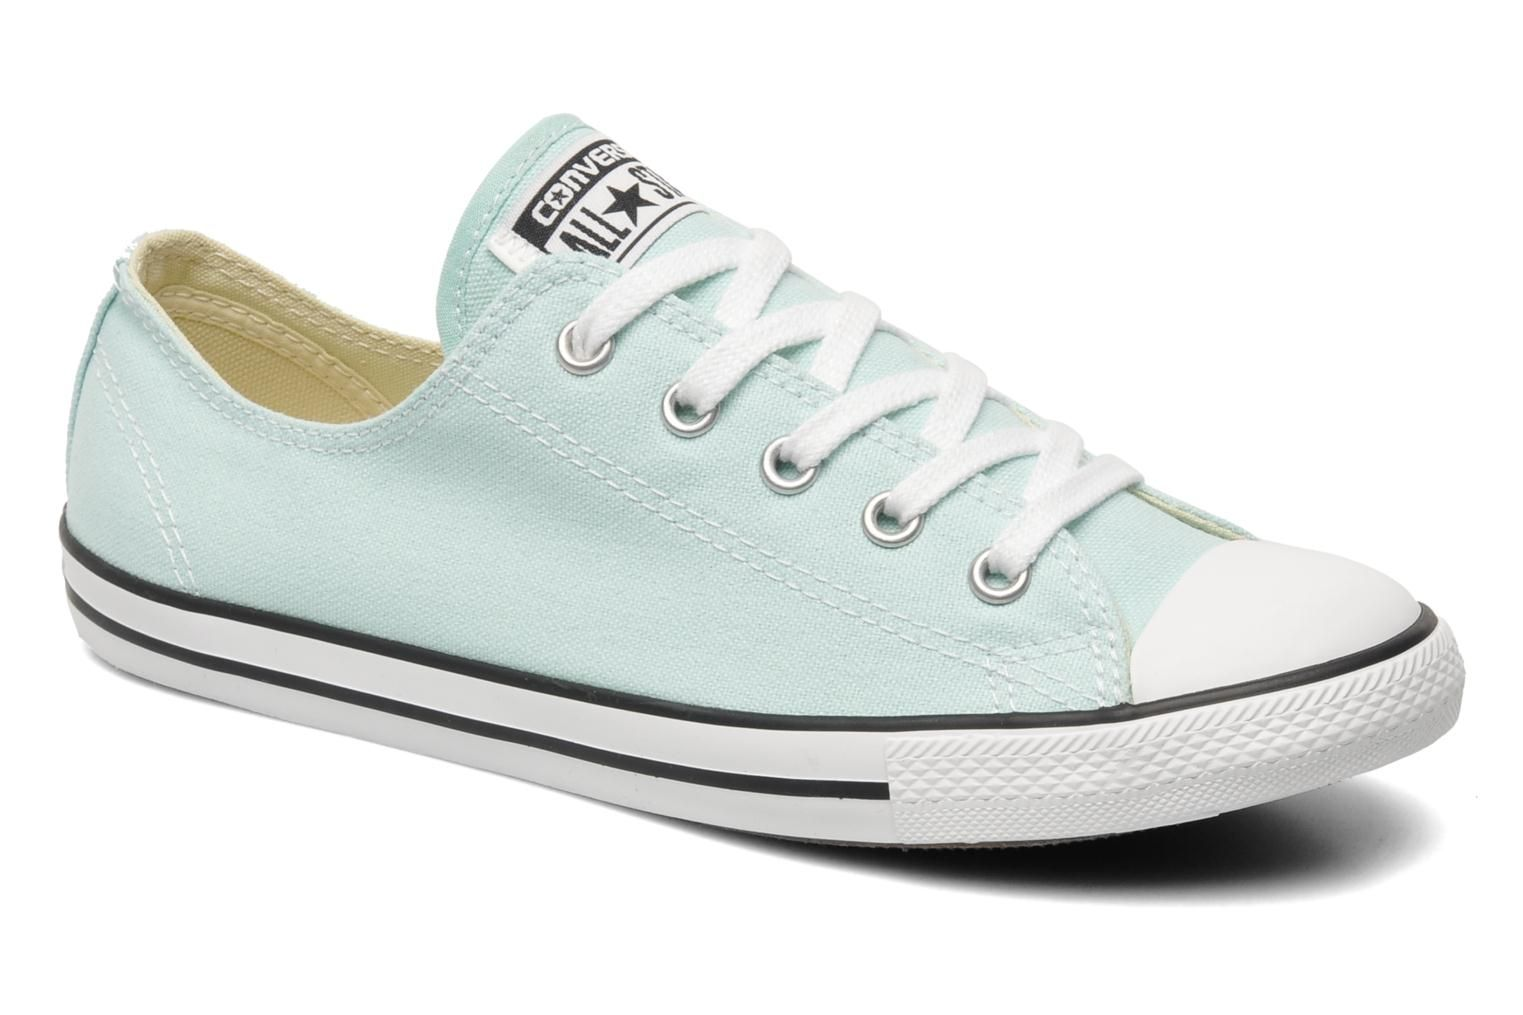 Converse All Star Dainty Canvas Ox W | Sarenza, Converse all ...